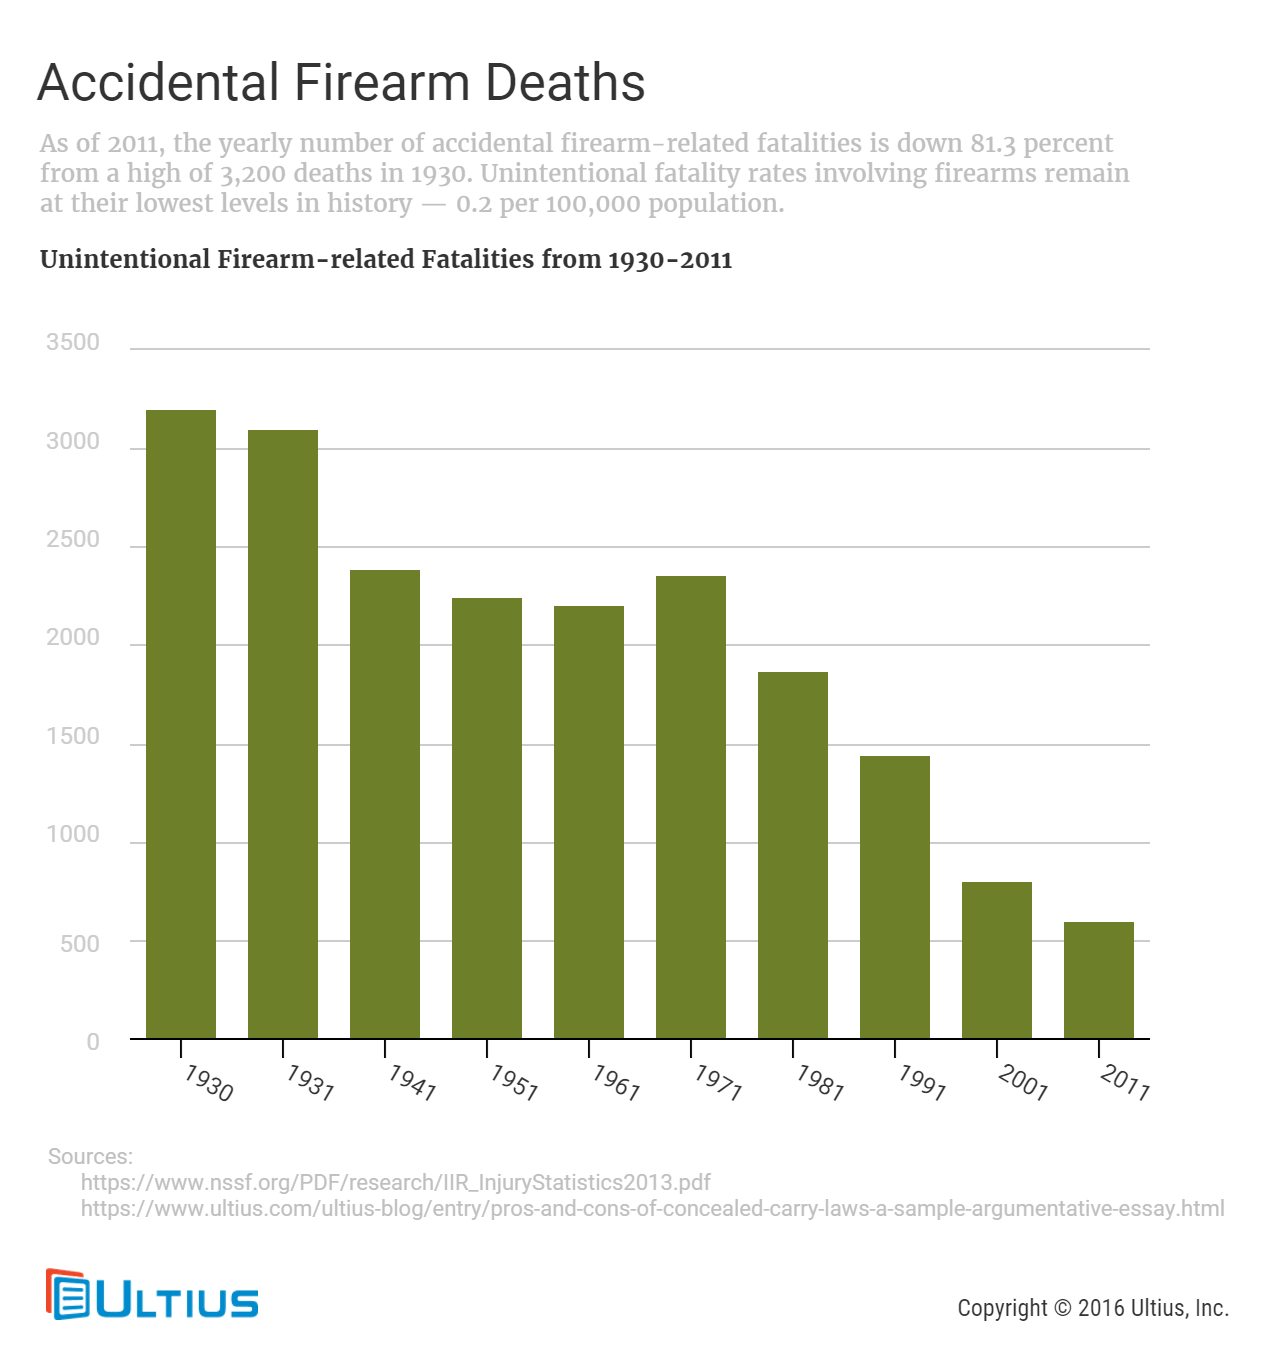 pros and cons of concealed carry laws a sample argumentative accidental firearm deaths from 1930 to 2011